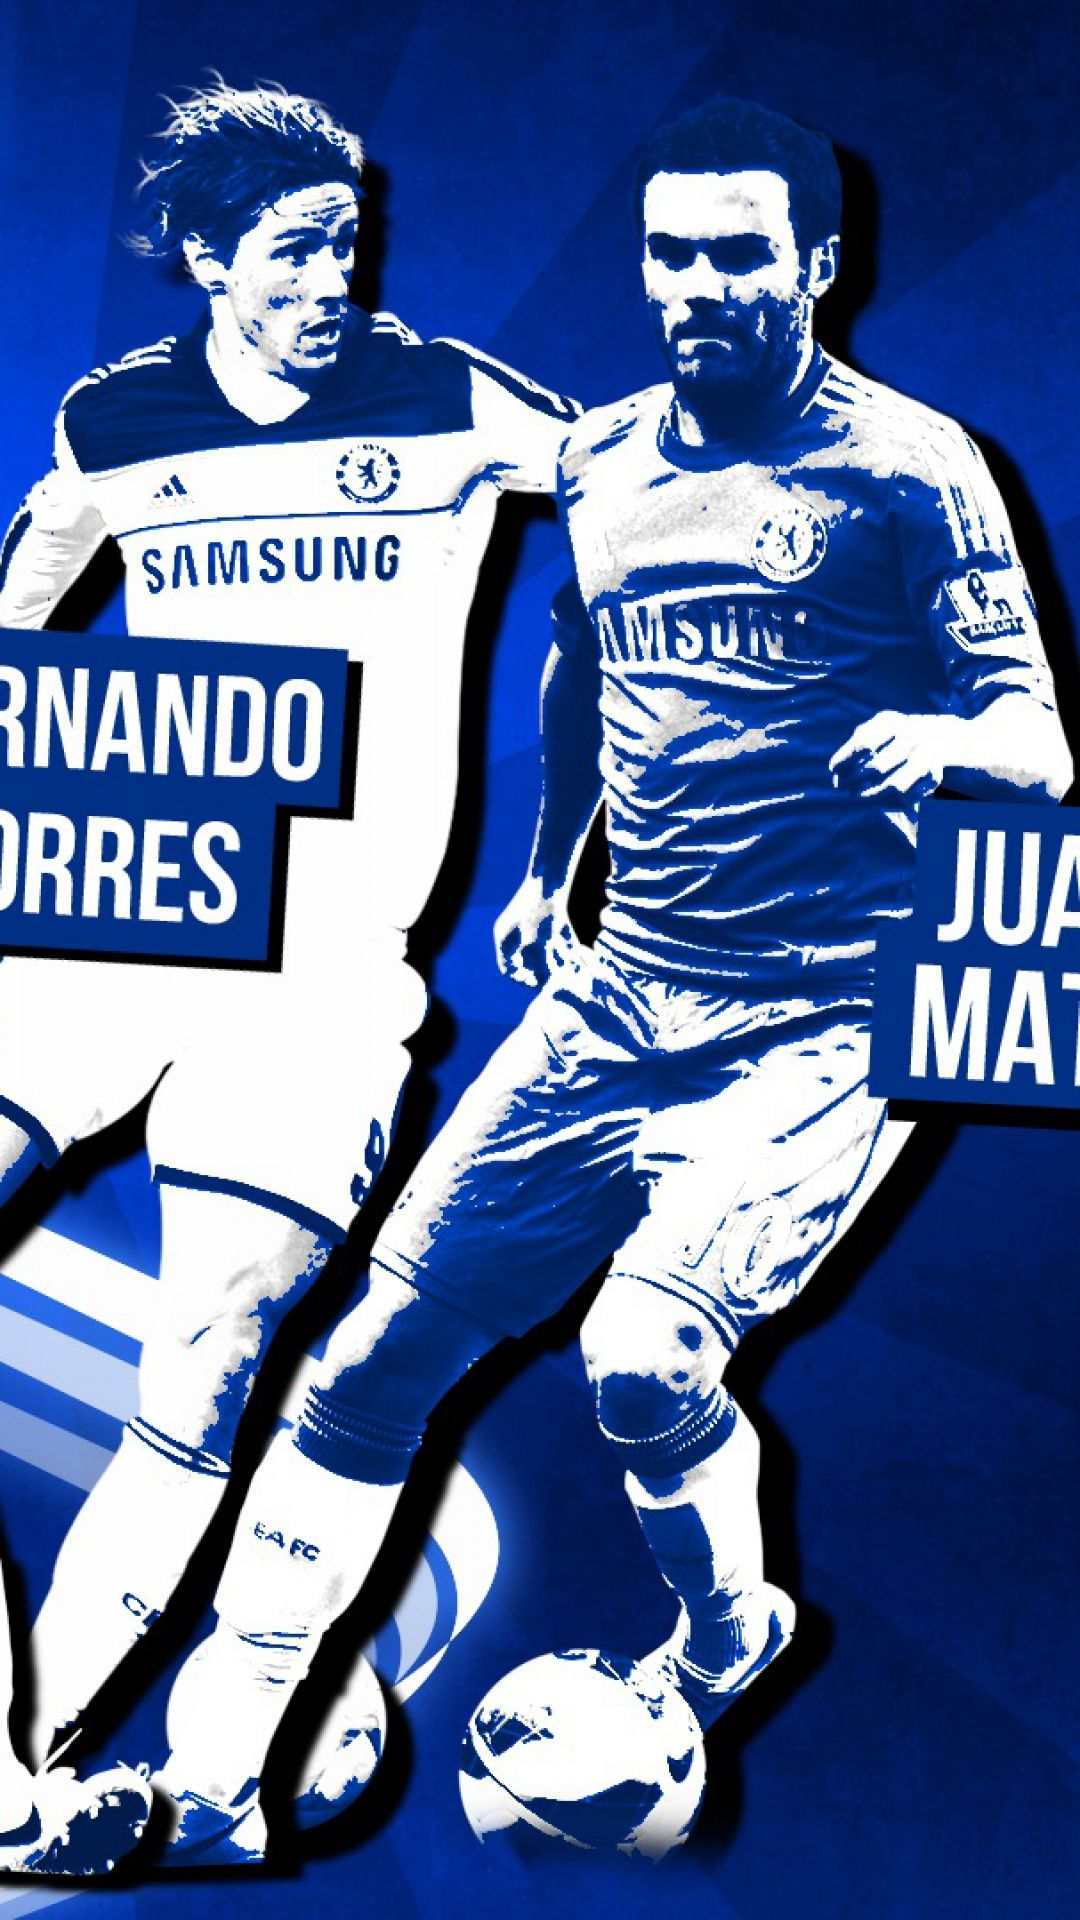 Wallpaper iphone chelsea - Qjz 44 Chelsea Fc Iphone 5 Wallpaper Chelsea Fc Iphone 5 Full Hd